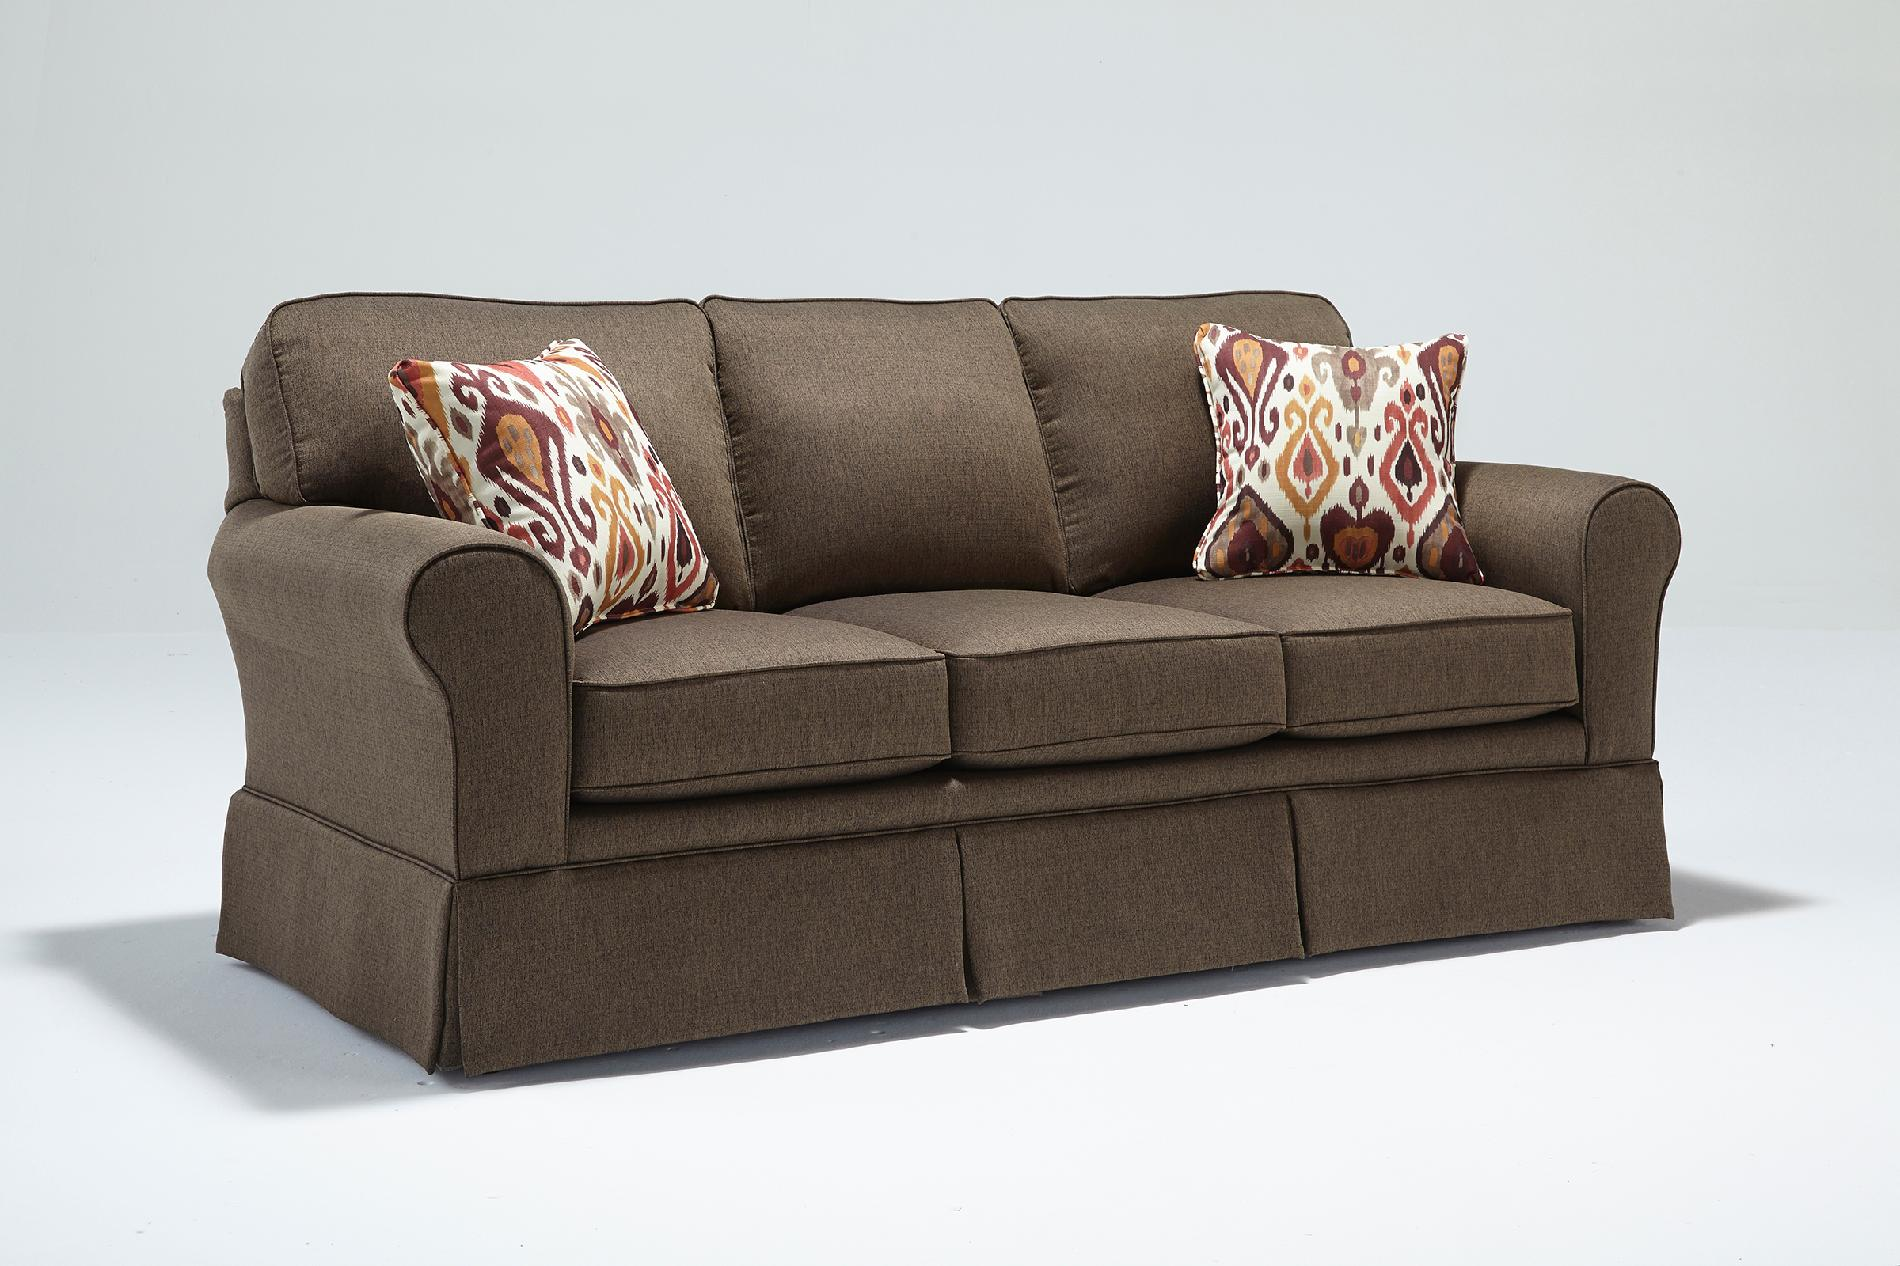 best sofa stores spray paint leather home furnishings gold midtown traditional shop